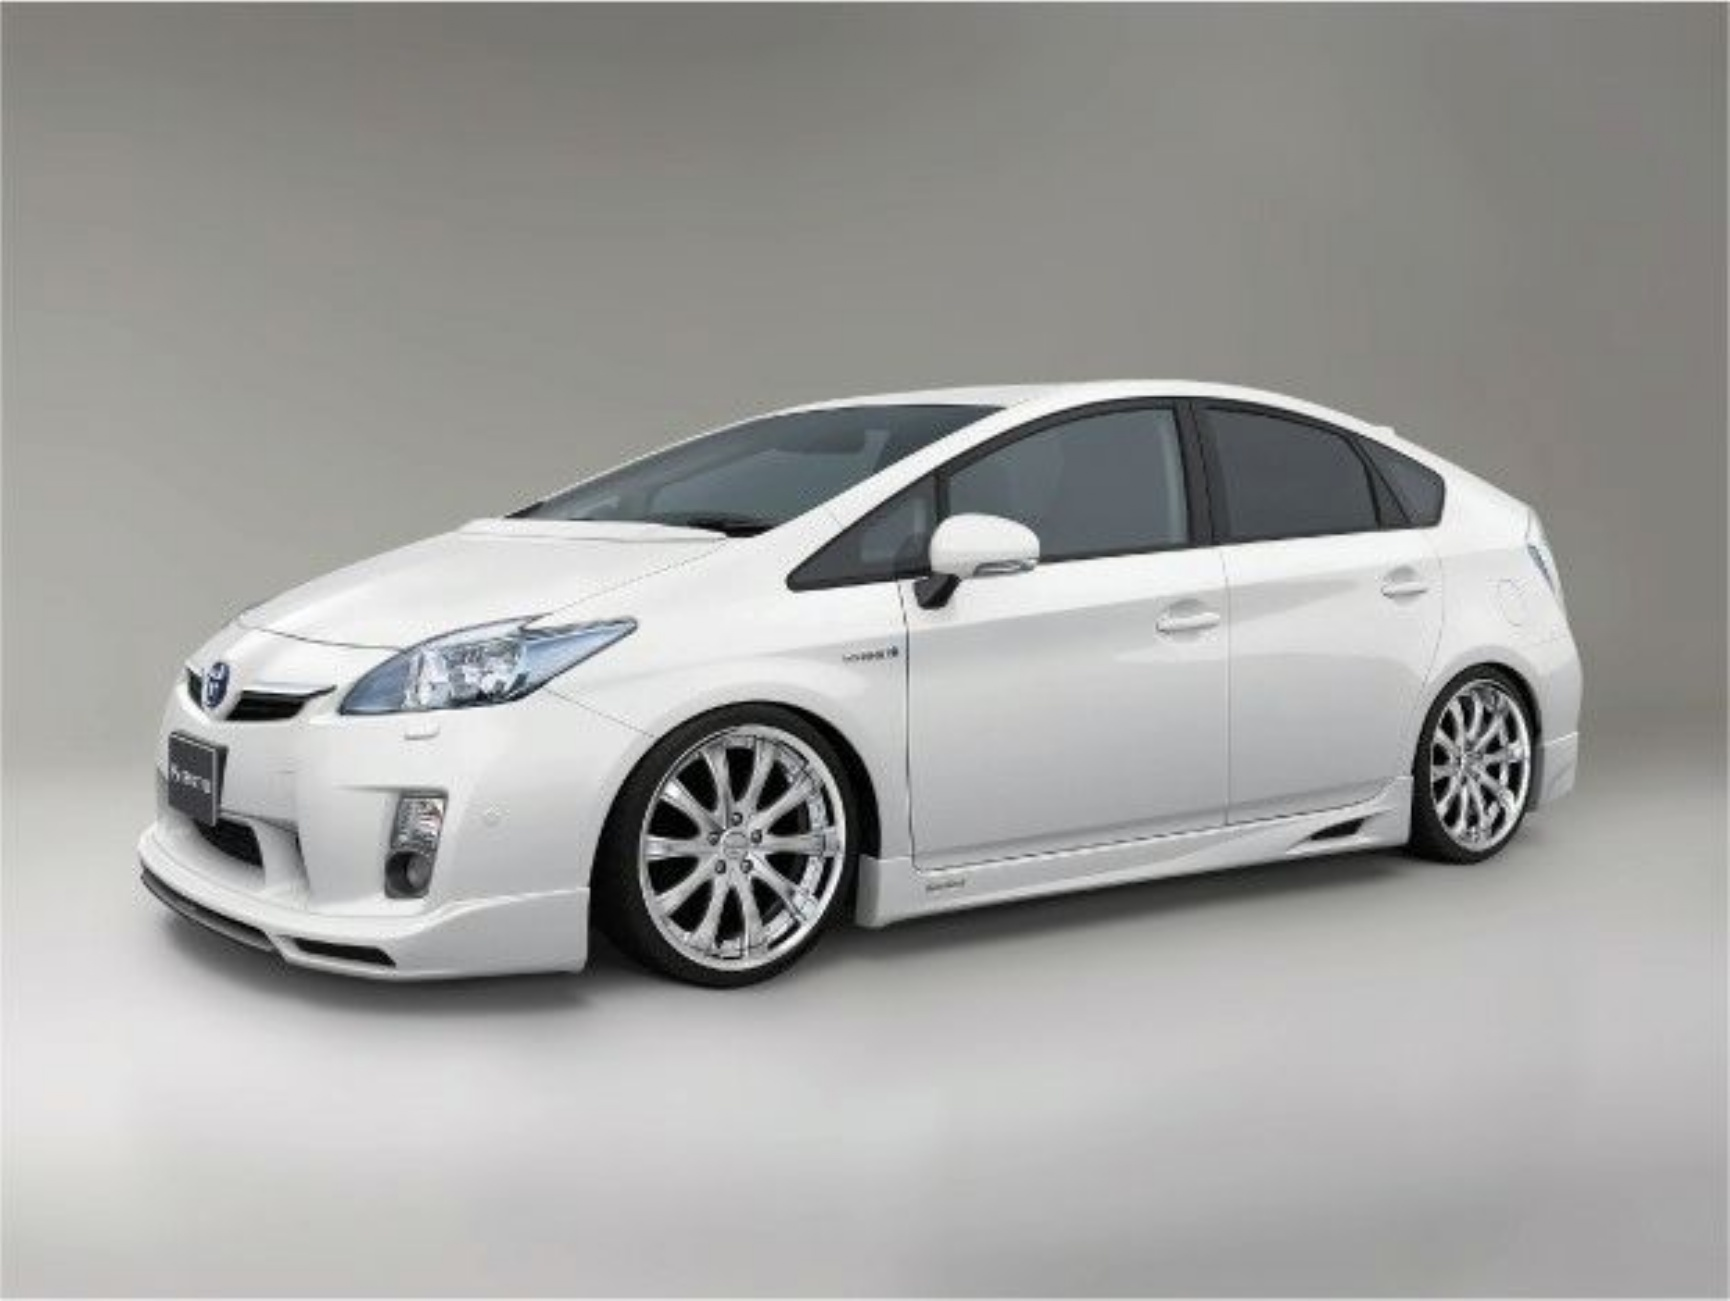 3dtuning of toyota prius 5 door hatchback 2010 3dtuning